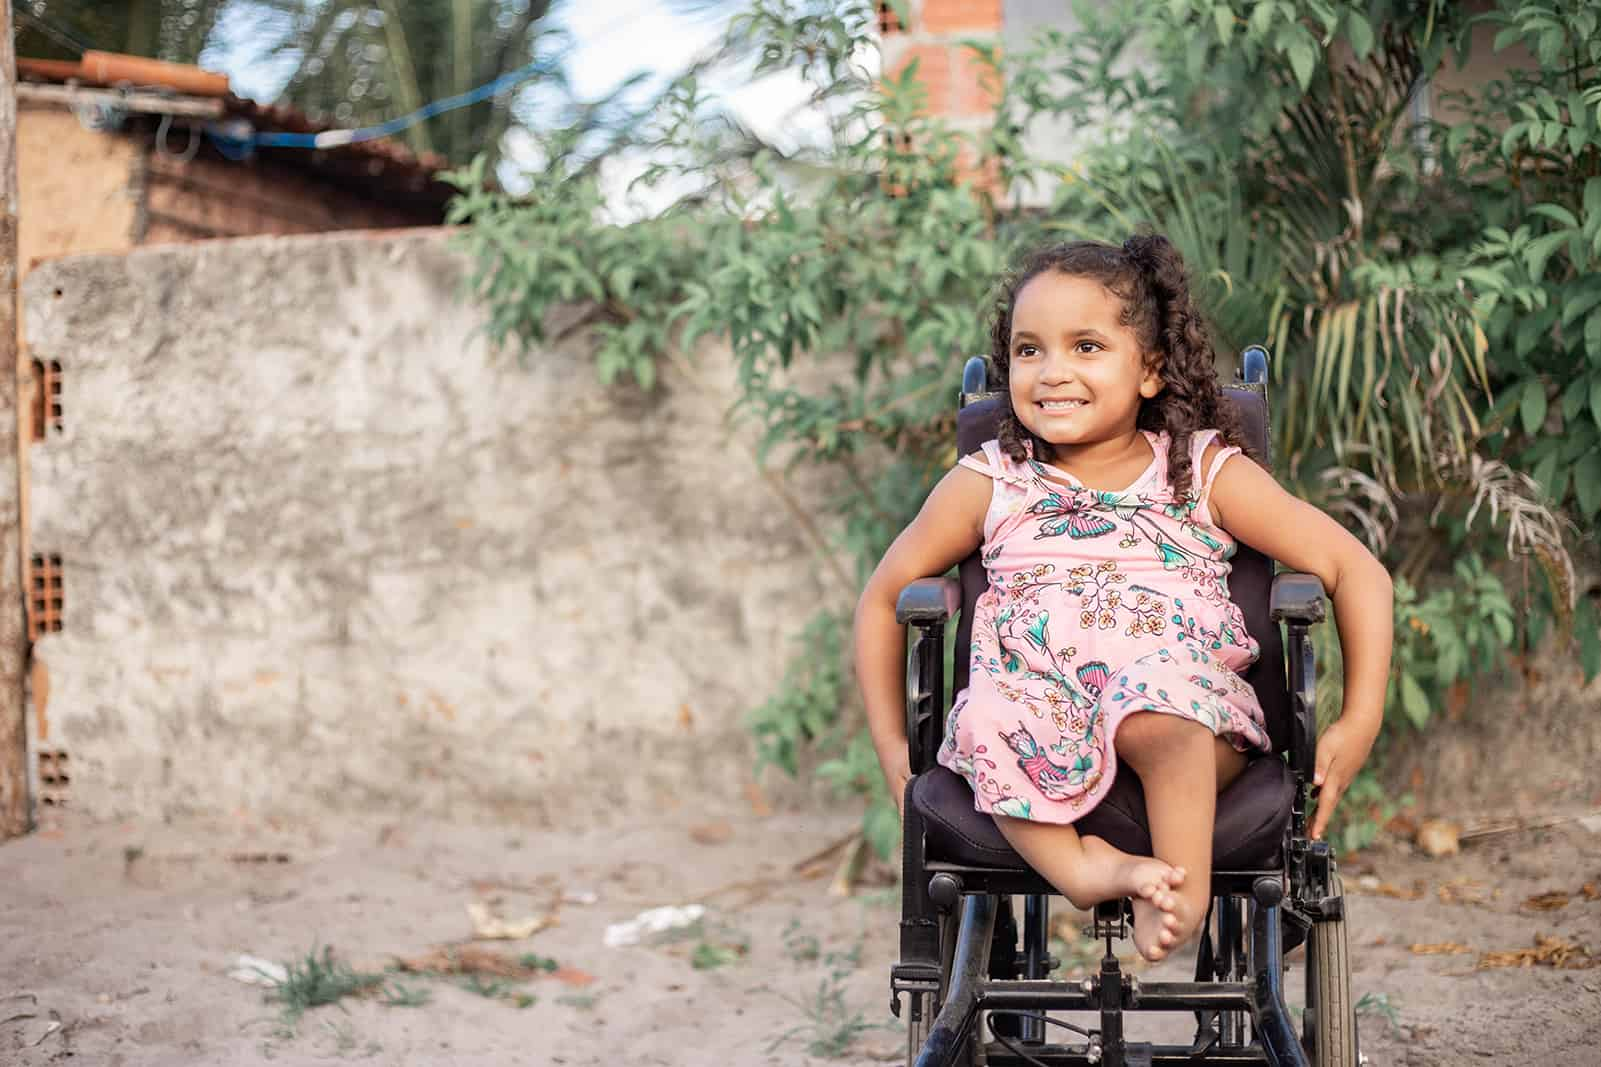 Maisa, in a pink dress, is sitting in her wheelchair on the road outside her house.